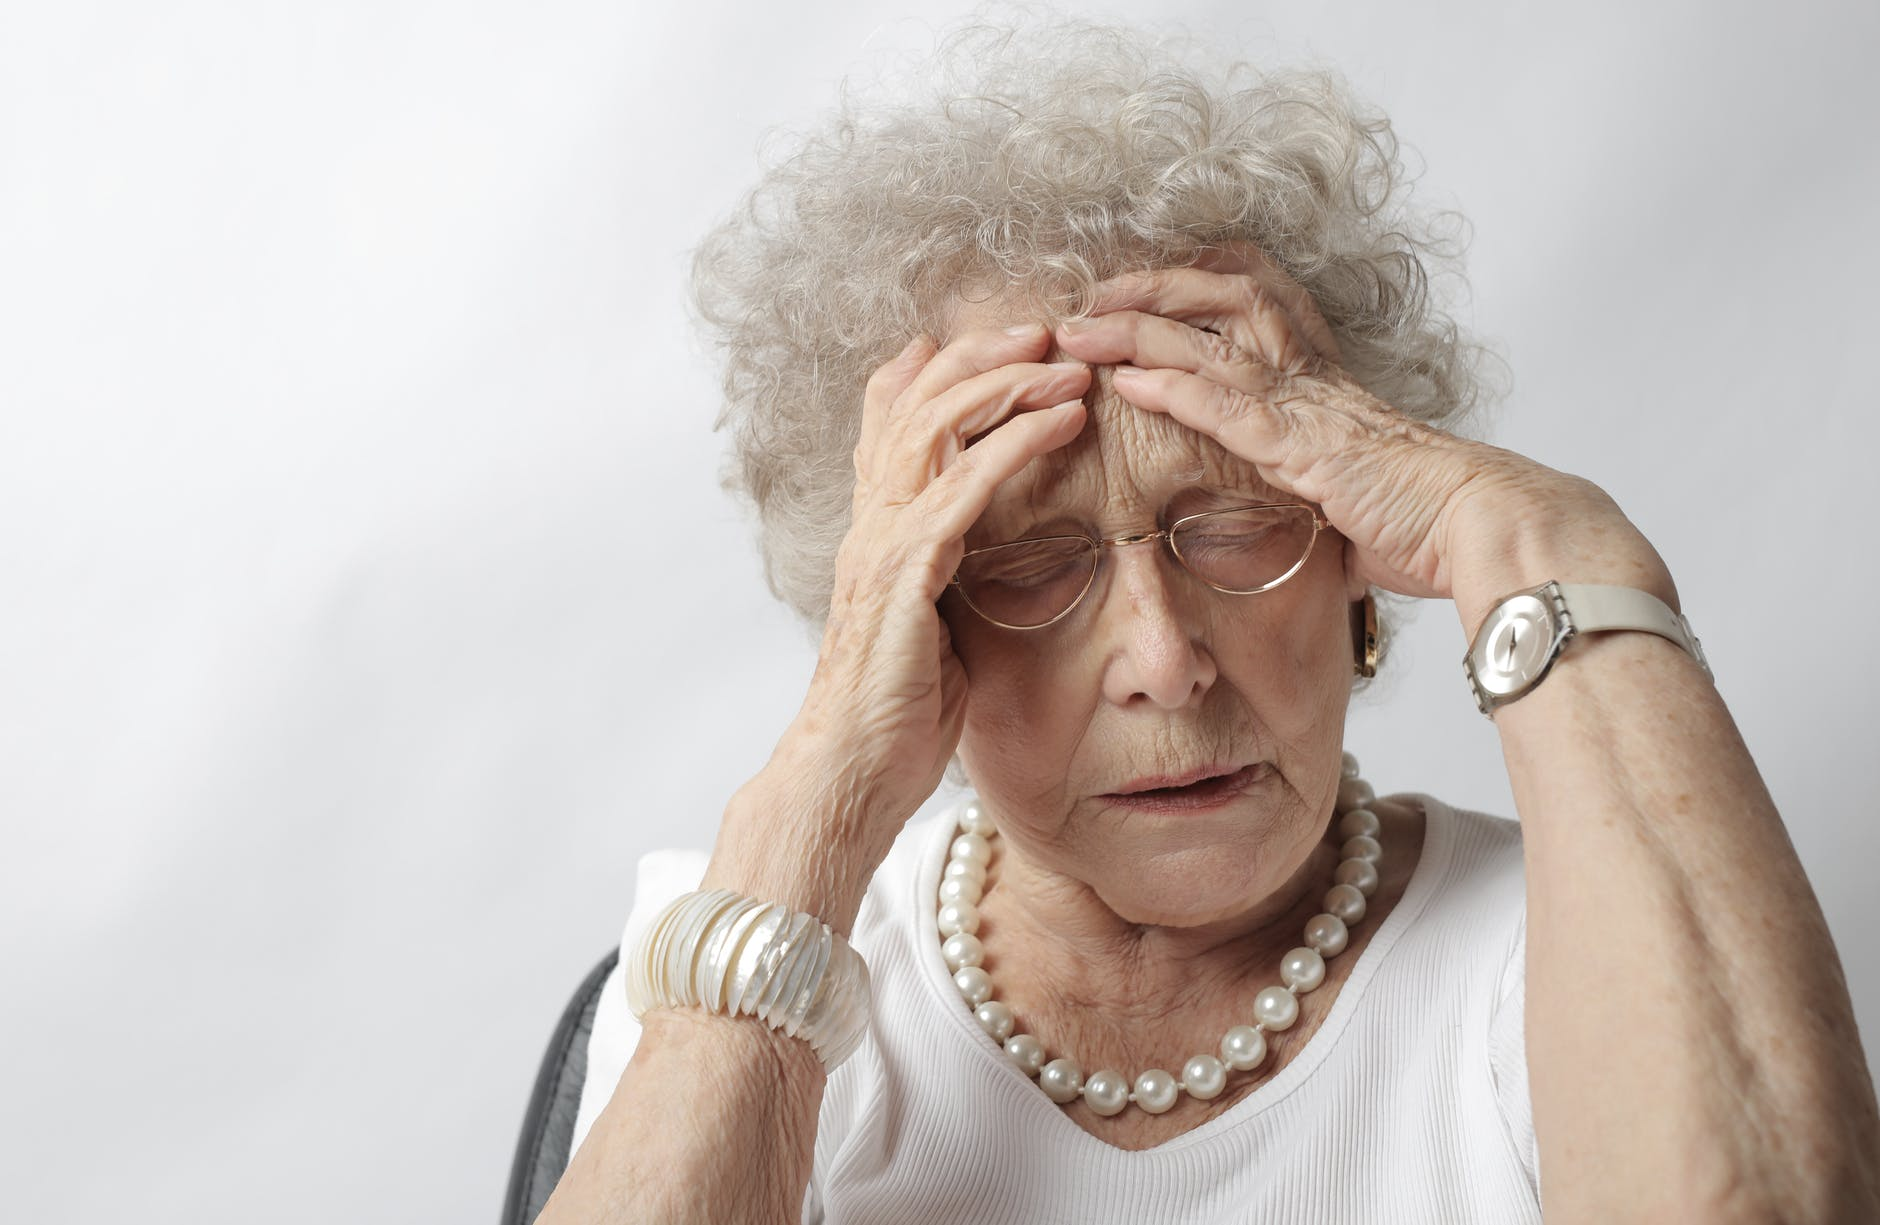 Photo by Andrea Piacquadio. An old woman with her hands holding her head and her eyes closed in exasperation.